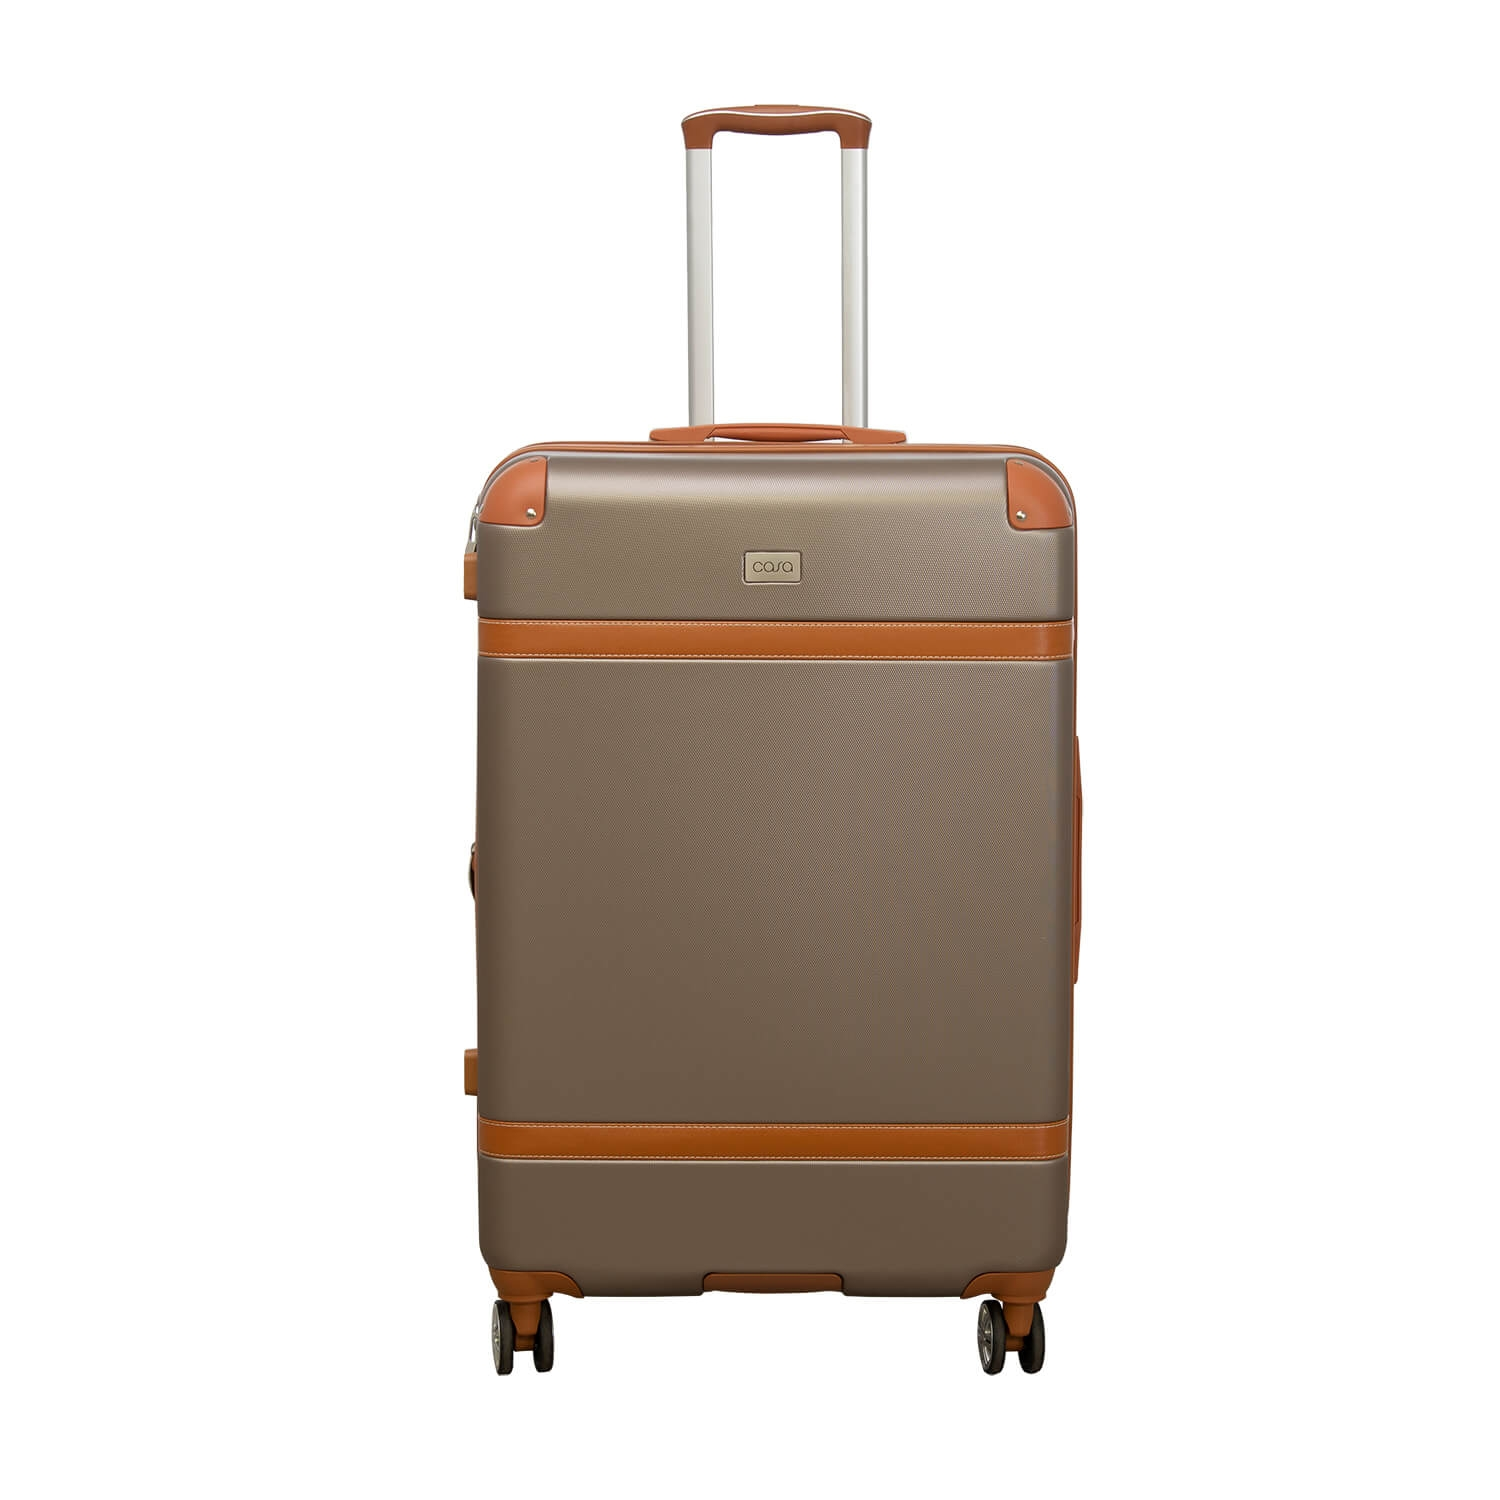 Image of Casa Contrast Banded Hard Case 44cm x 26cm x 76cm, Champagne And Tan